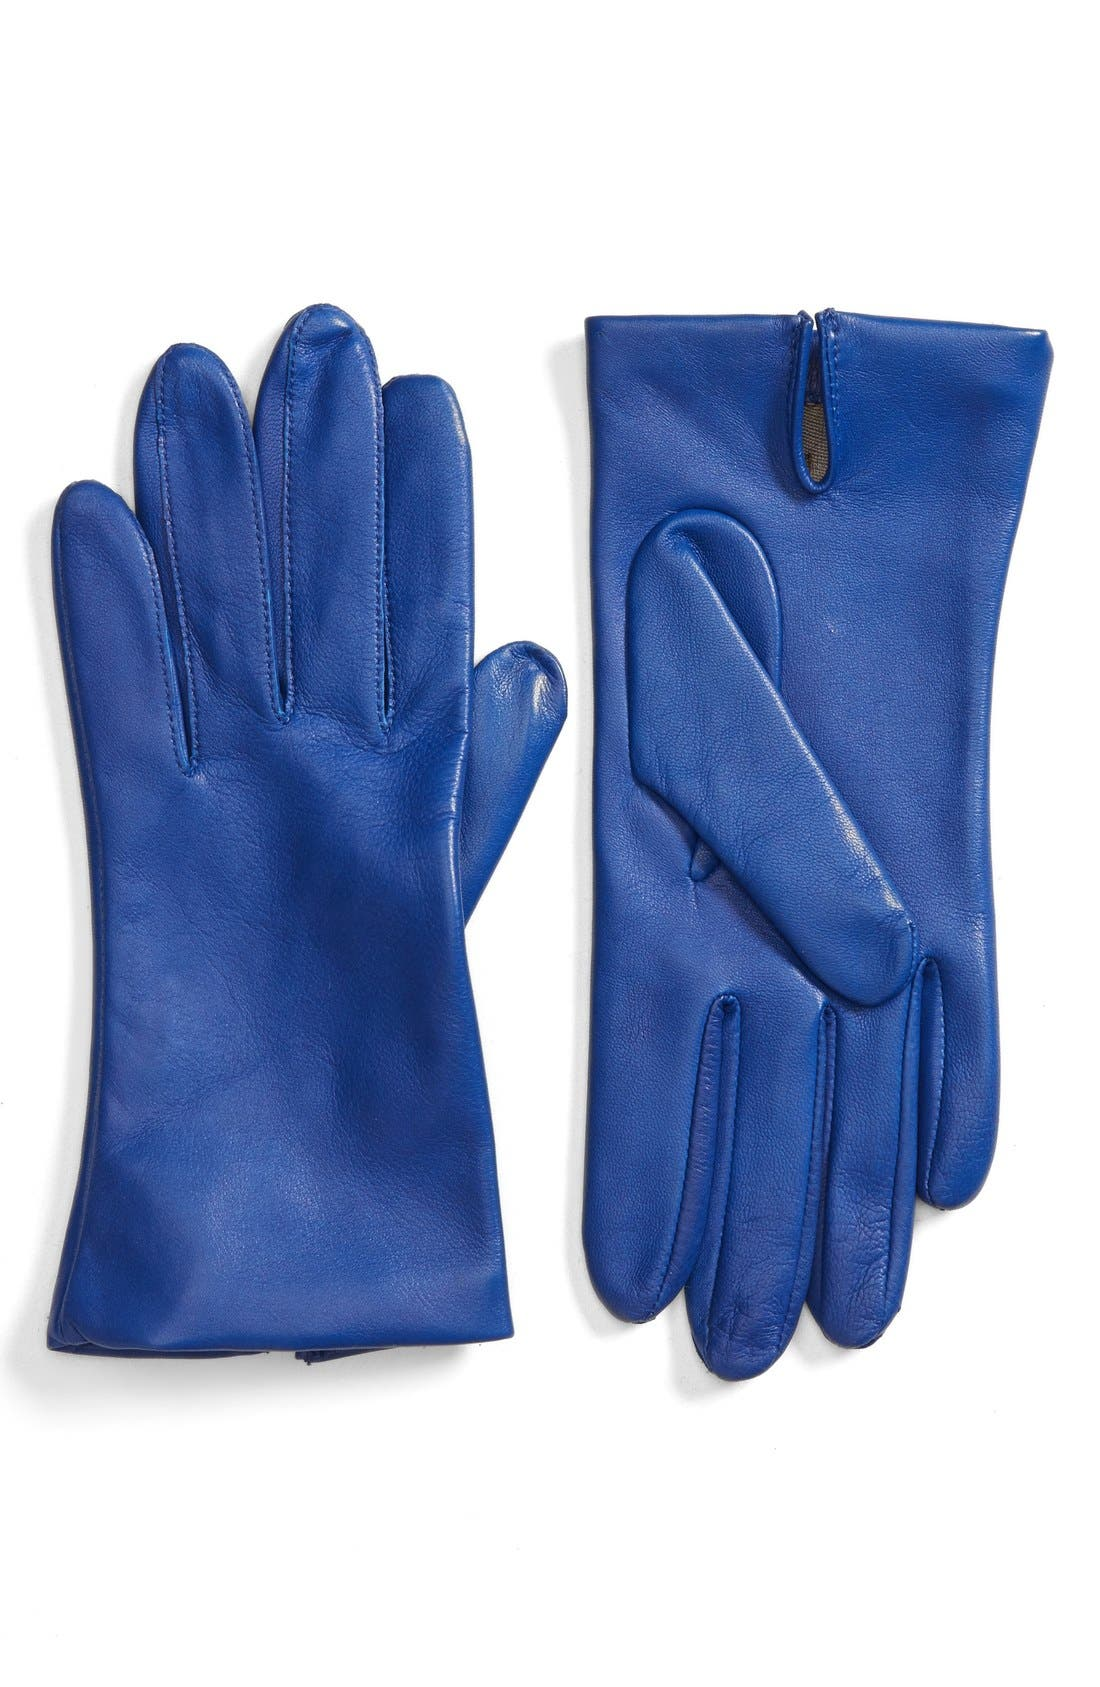 Short Leather Gloves,                             Main thumbnail 1, color,                             Electric Blue